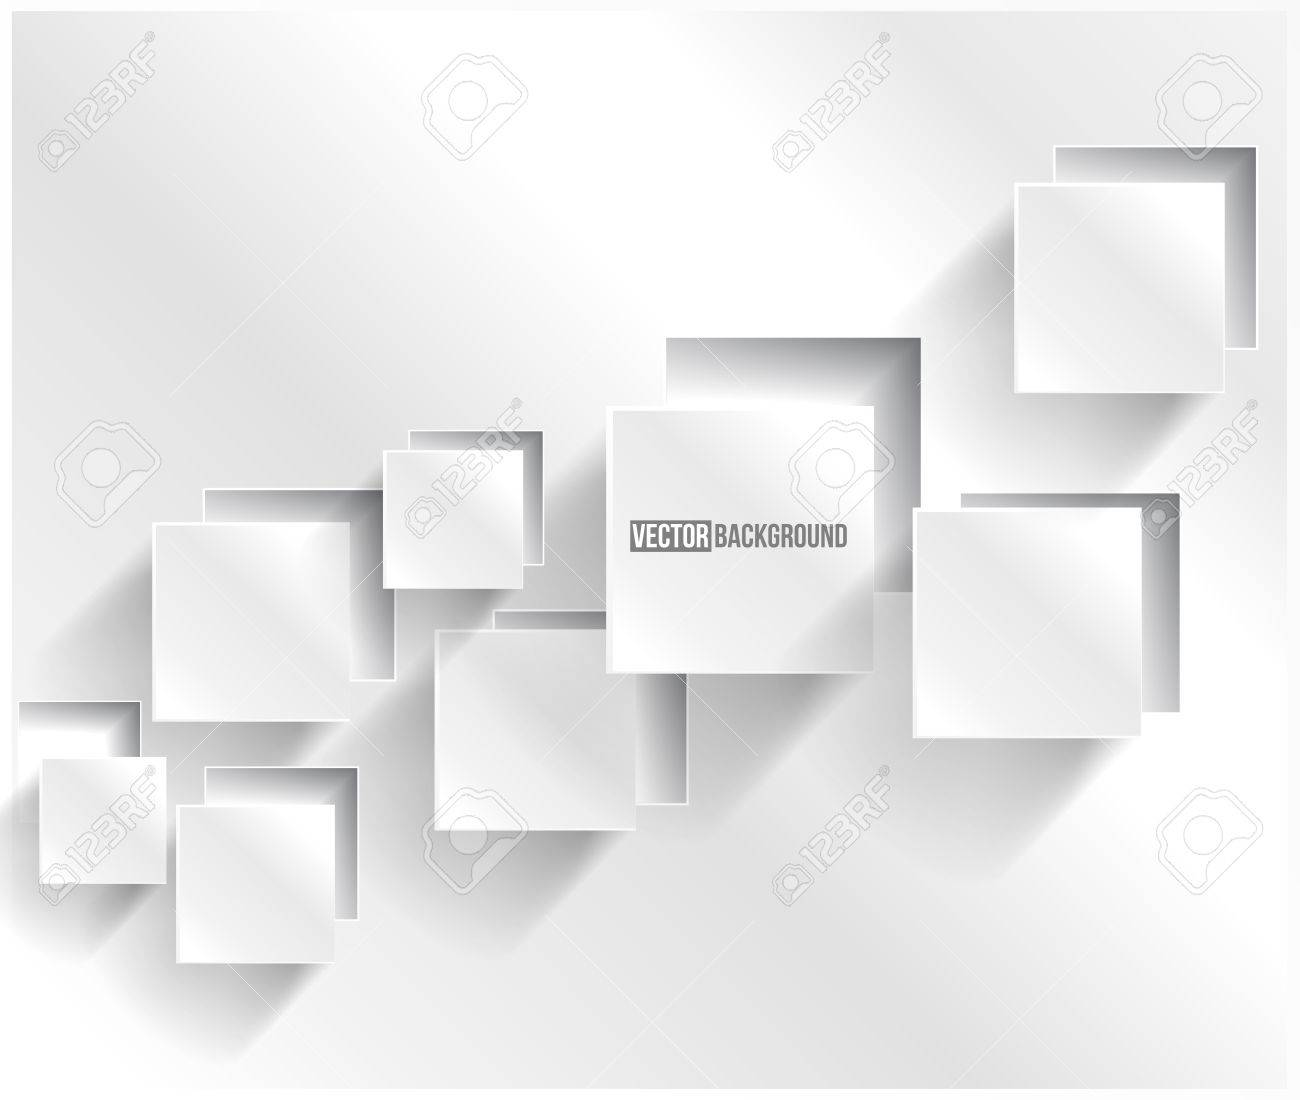 Vector abstract background square Web Design - 18913444